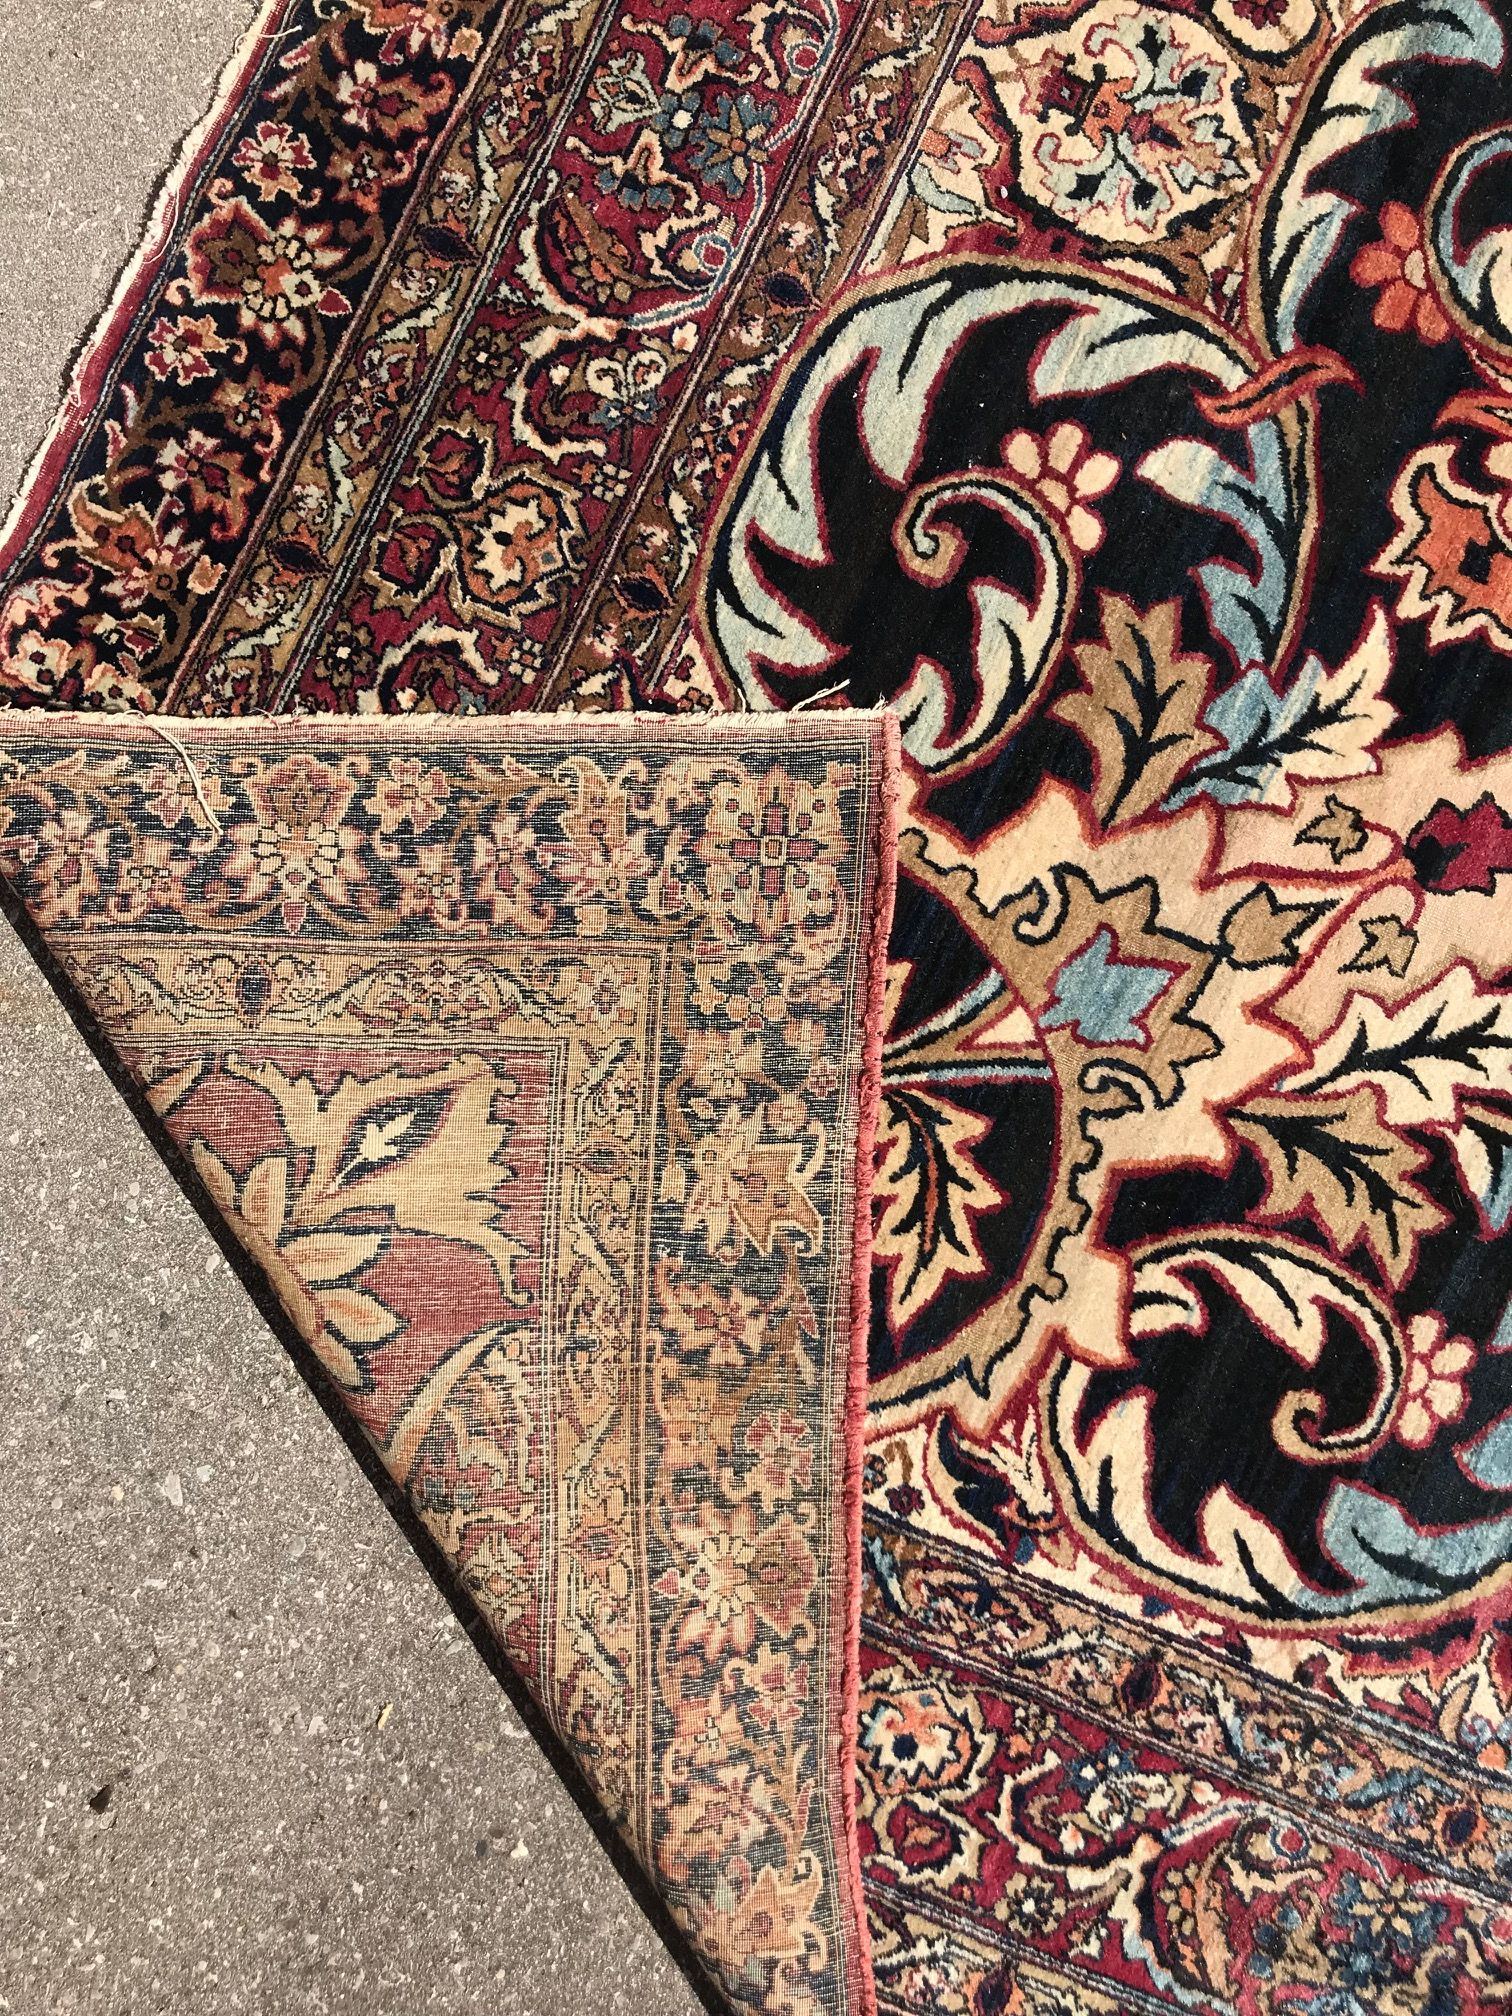 Antique Persian Kermanshah Rug A Look At The Knots On The